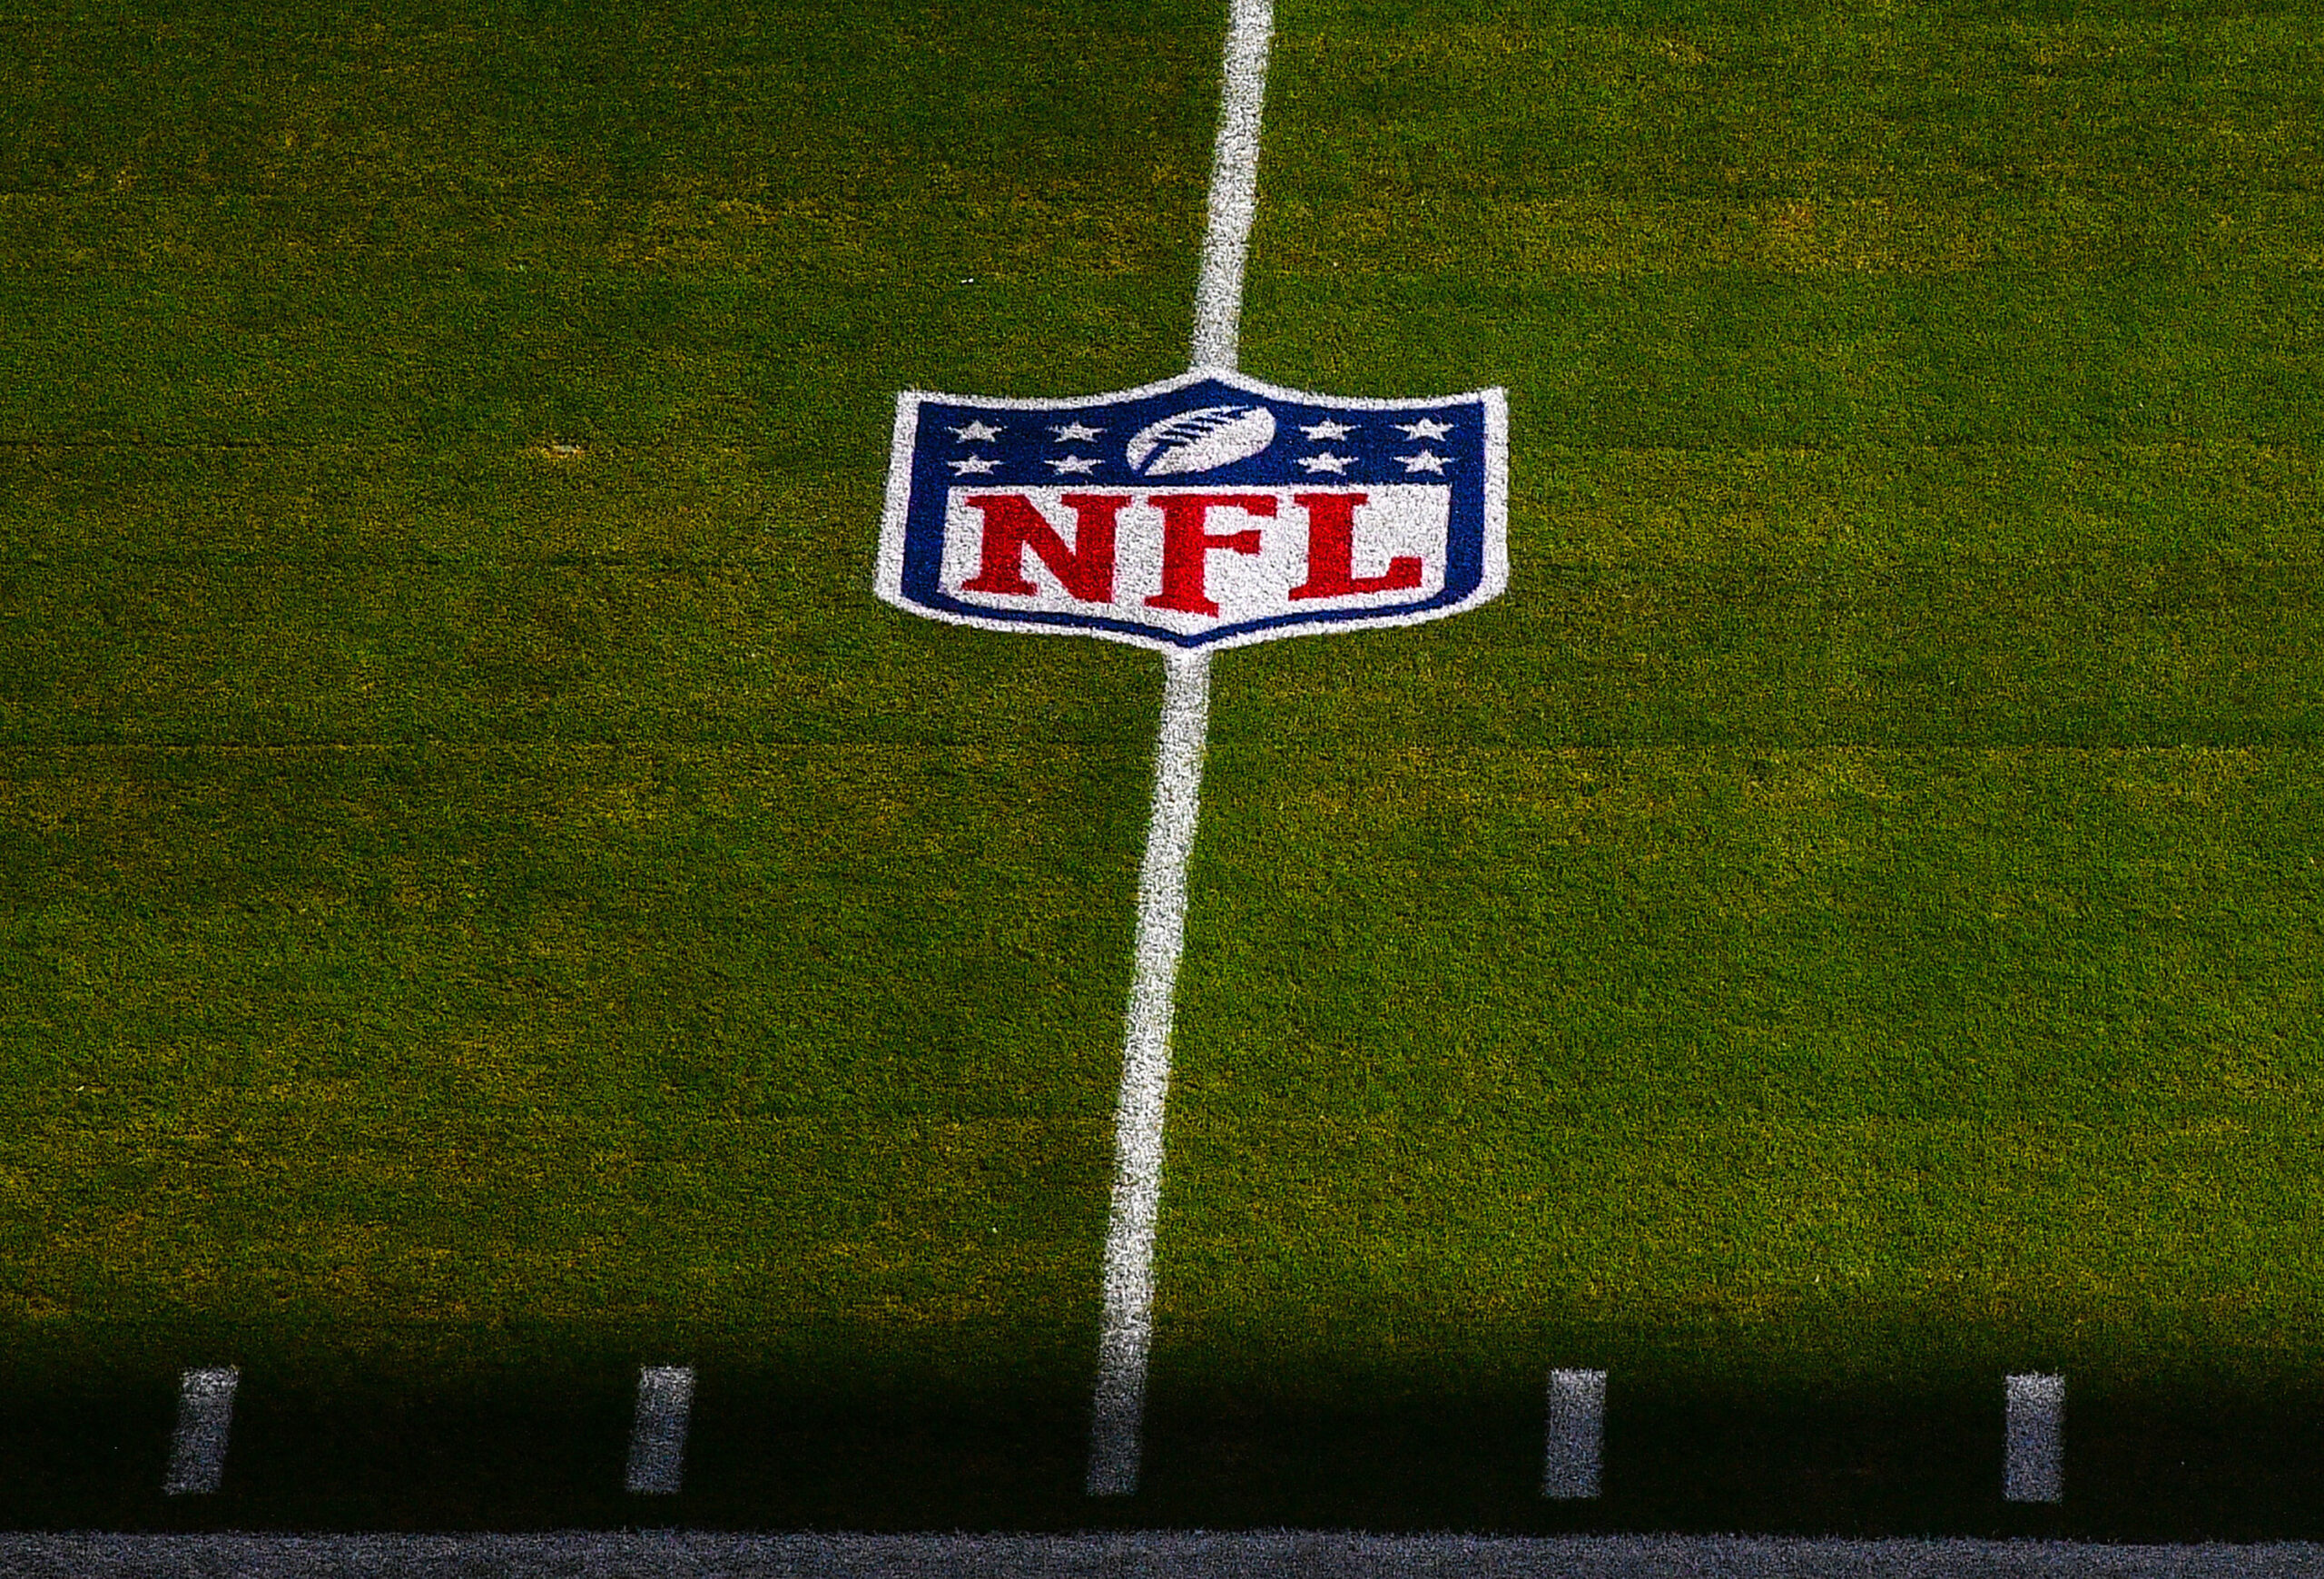 <i>Mark Brown/Getty Images</i><br/>If a National Football League game cannot be rescheduled and is canceled due to a Covid-19 outbreak among unvaccinated players